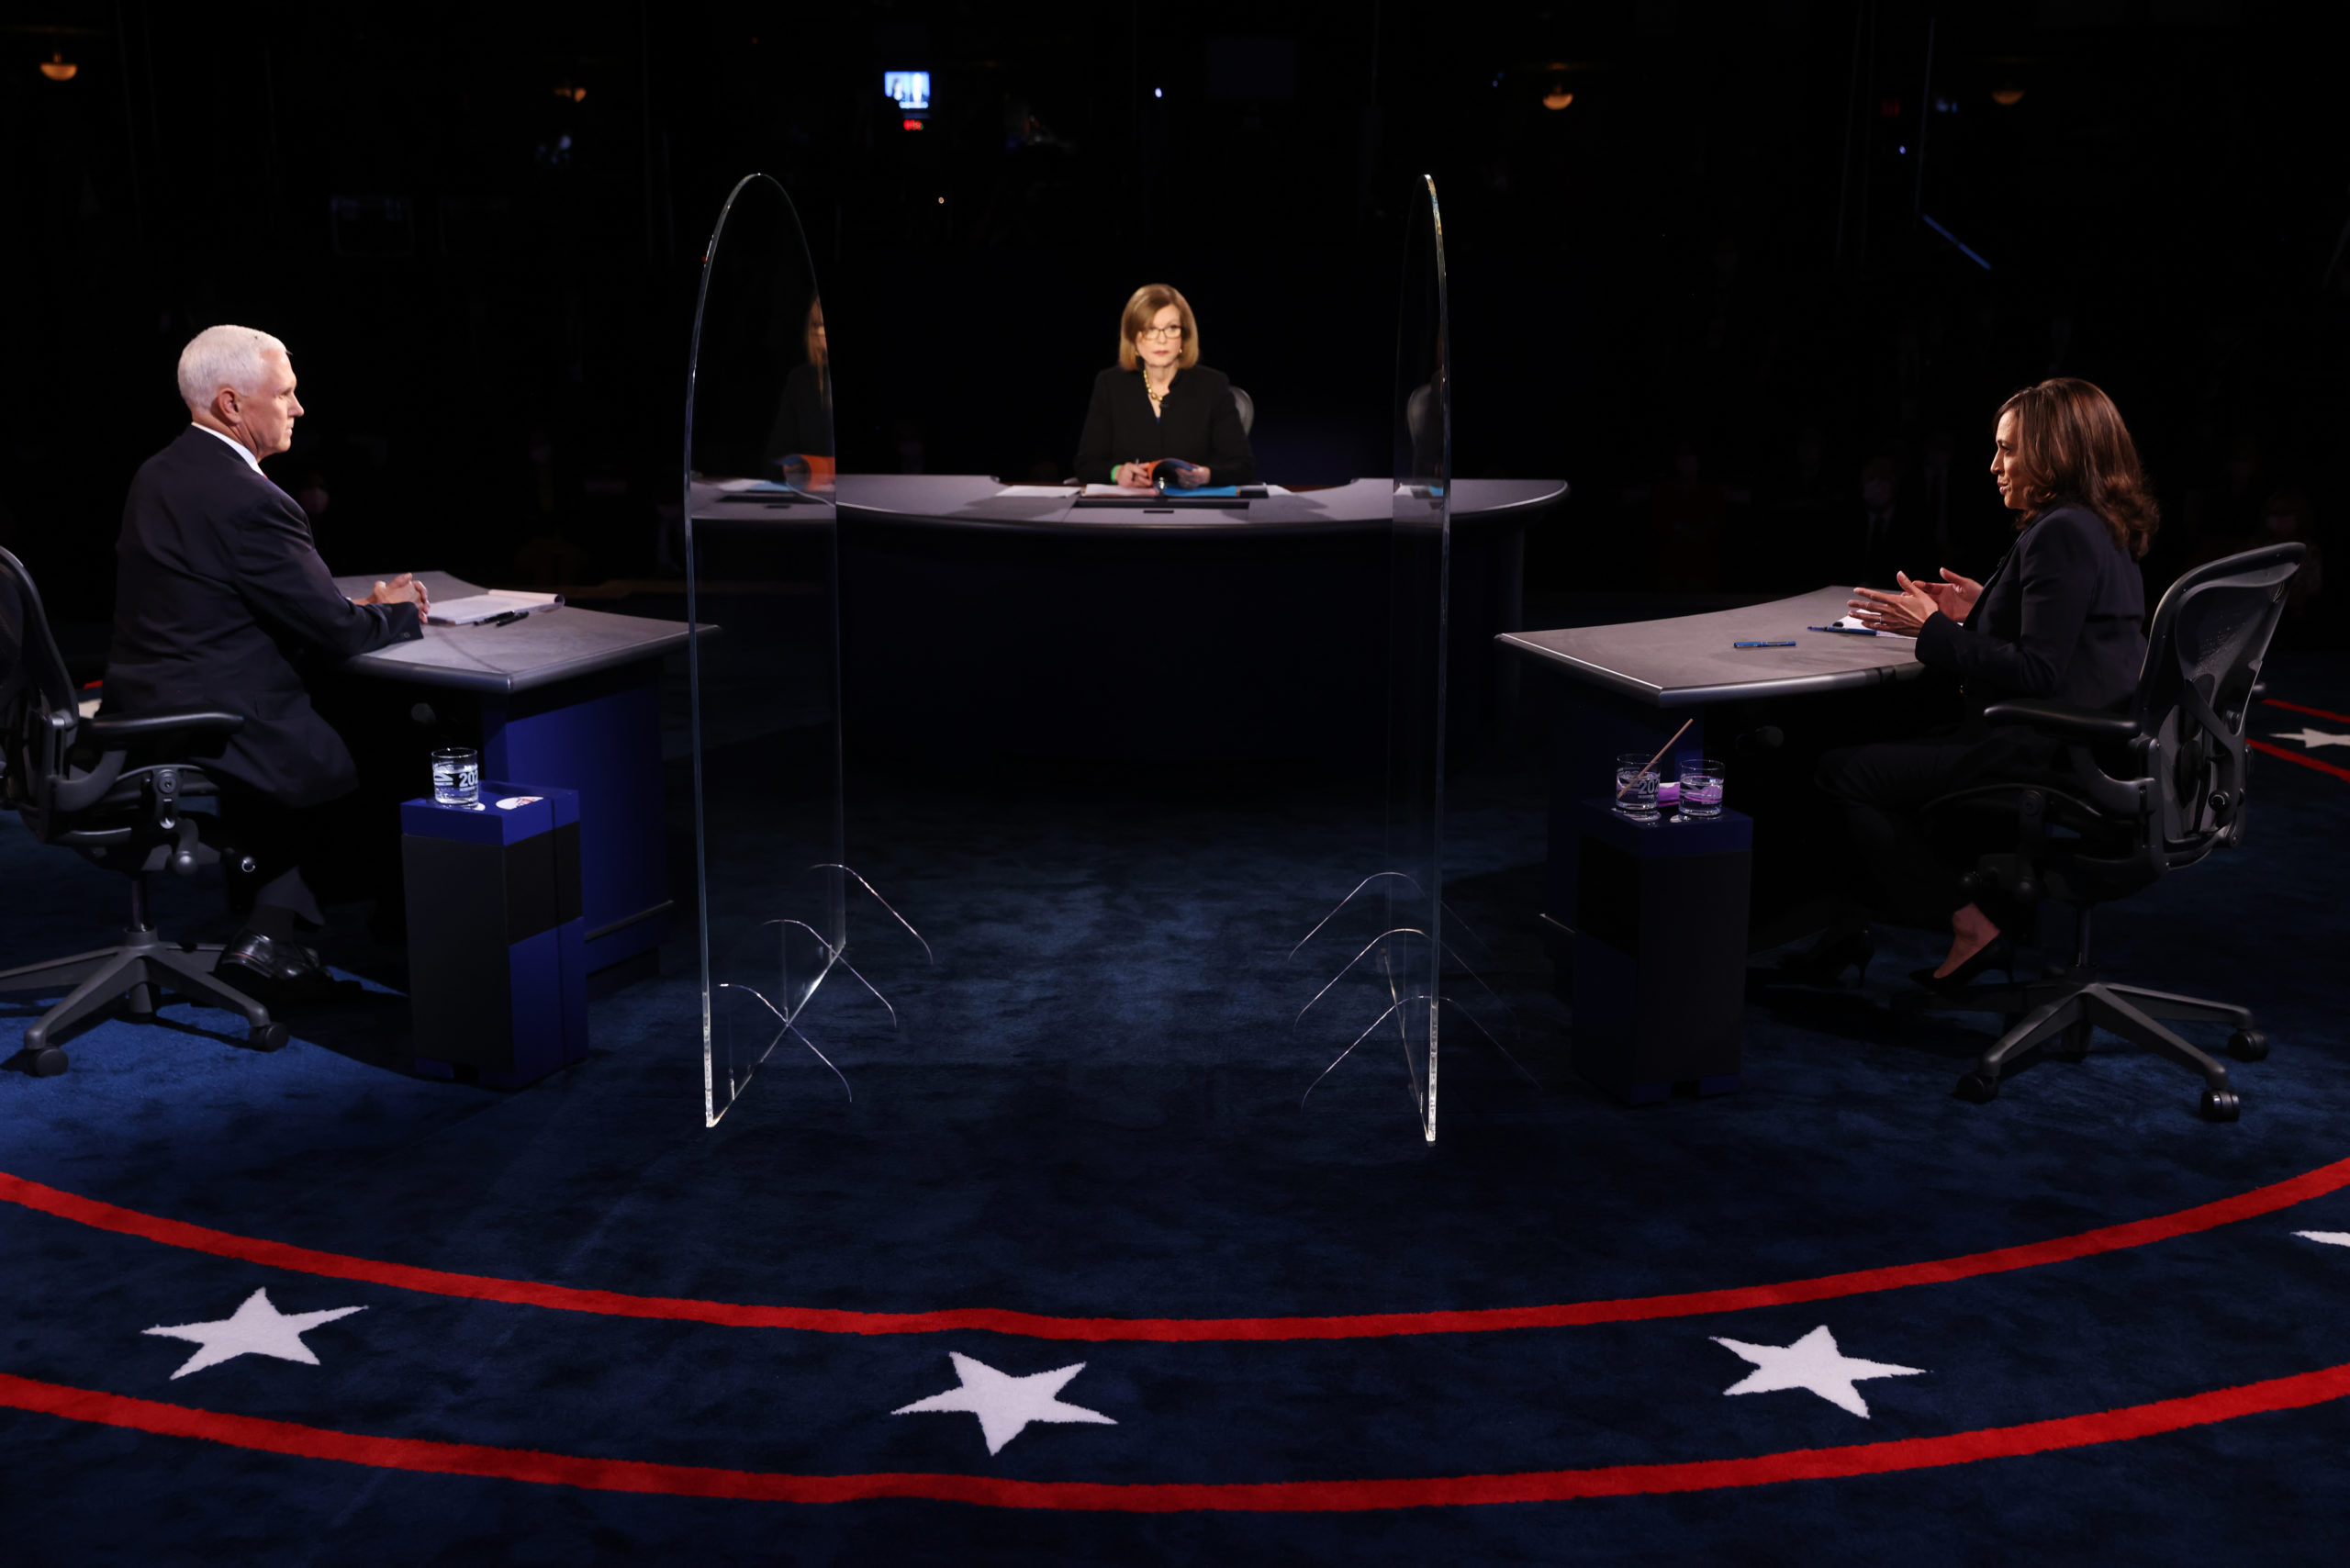 SALT LAKE CITY, UTAH - OCTOBER 07: Democratic vice presidential nominee Sen. Kamala Harris (D-CA) and U.S. Vice President Mike Pence participate in the vice presidential debate moderated by Washington Bureau Chief for USA Today Susan Page (C) at the University of Utah on October 7, 2020 in Salt Lake City, Utah. The vice presidential candidates only meet once to debate before the general election on November 3. (Photo by Justin Sullivan/Getty Images)